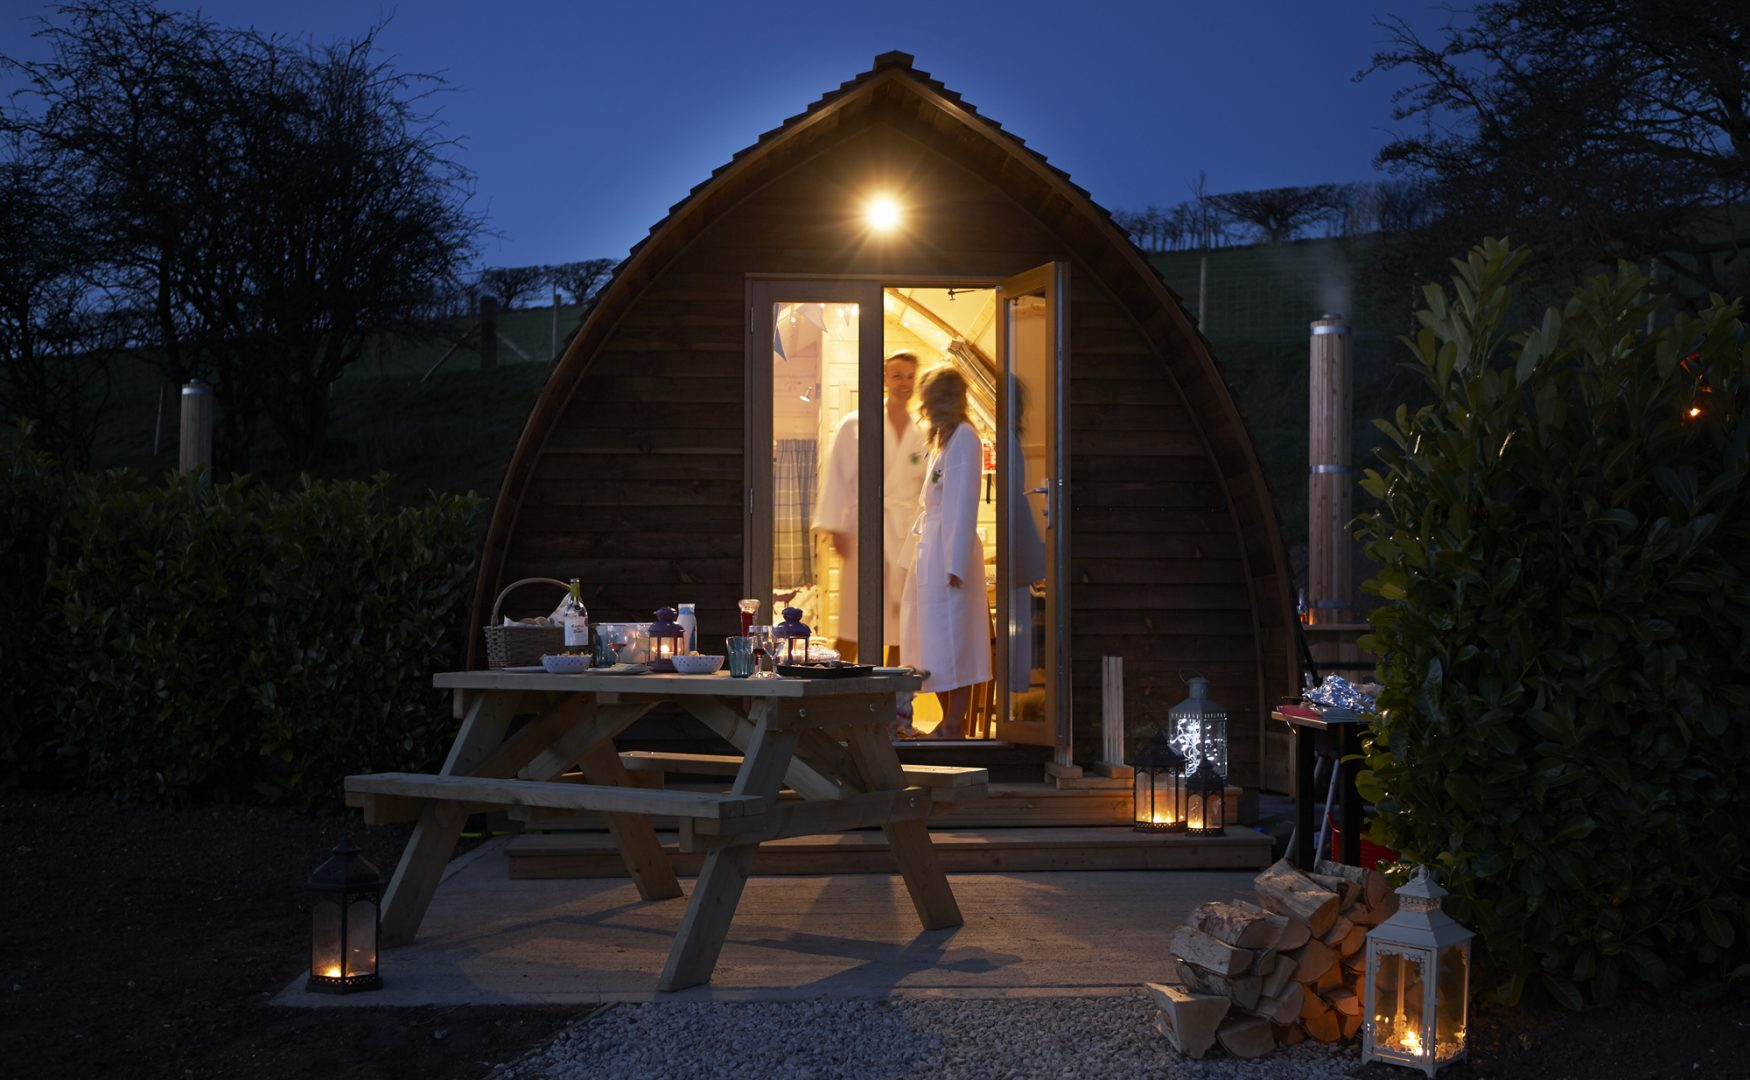 20% OFF glamping accommodation!